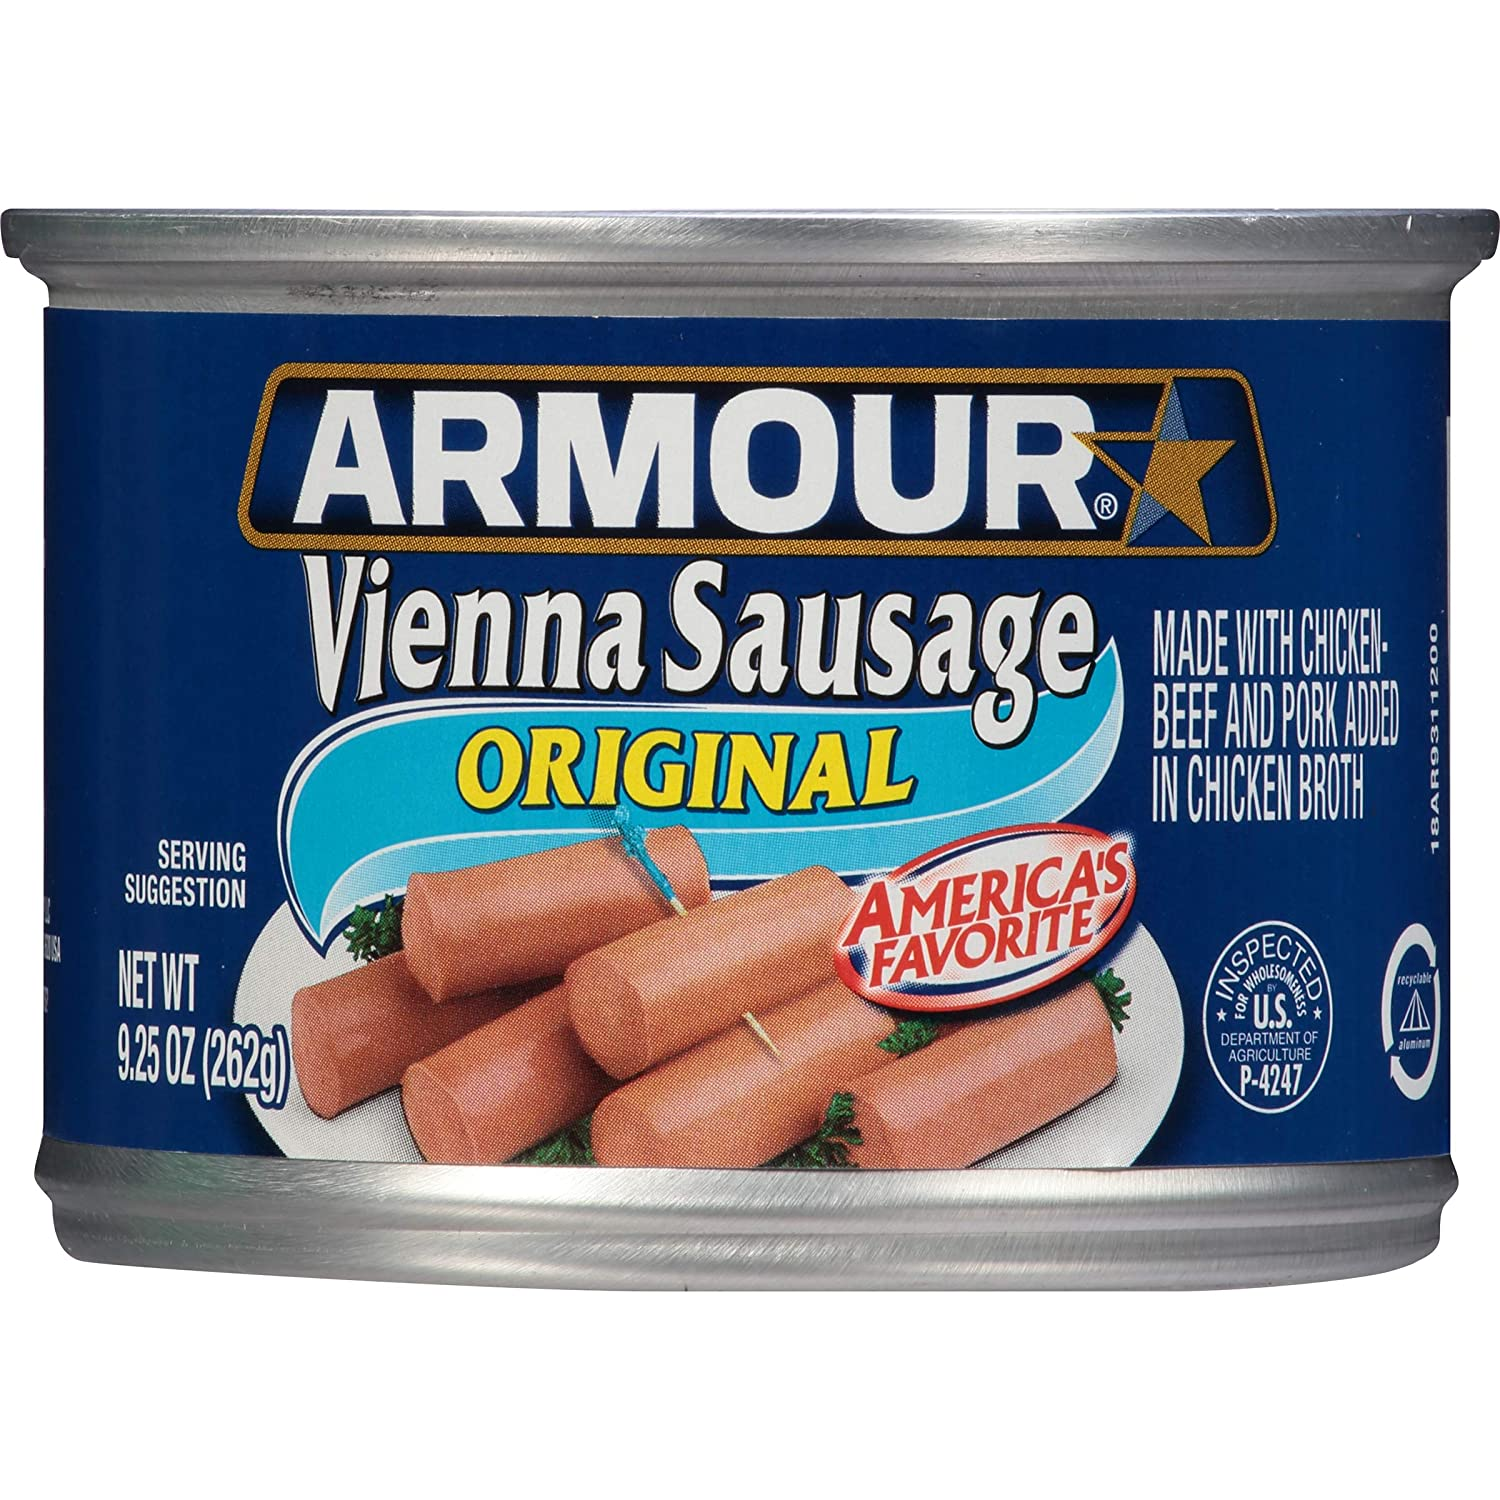 Armour Star Vienna Sausage, Original, 9.25 oz. (Pack of 12)